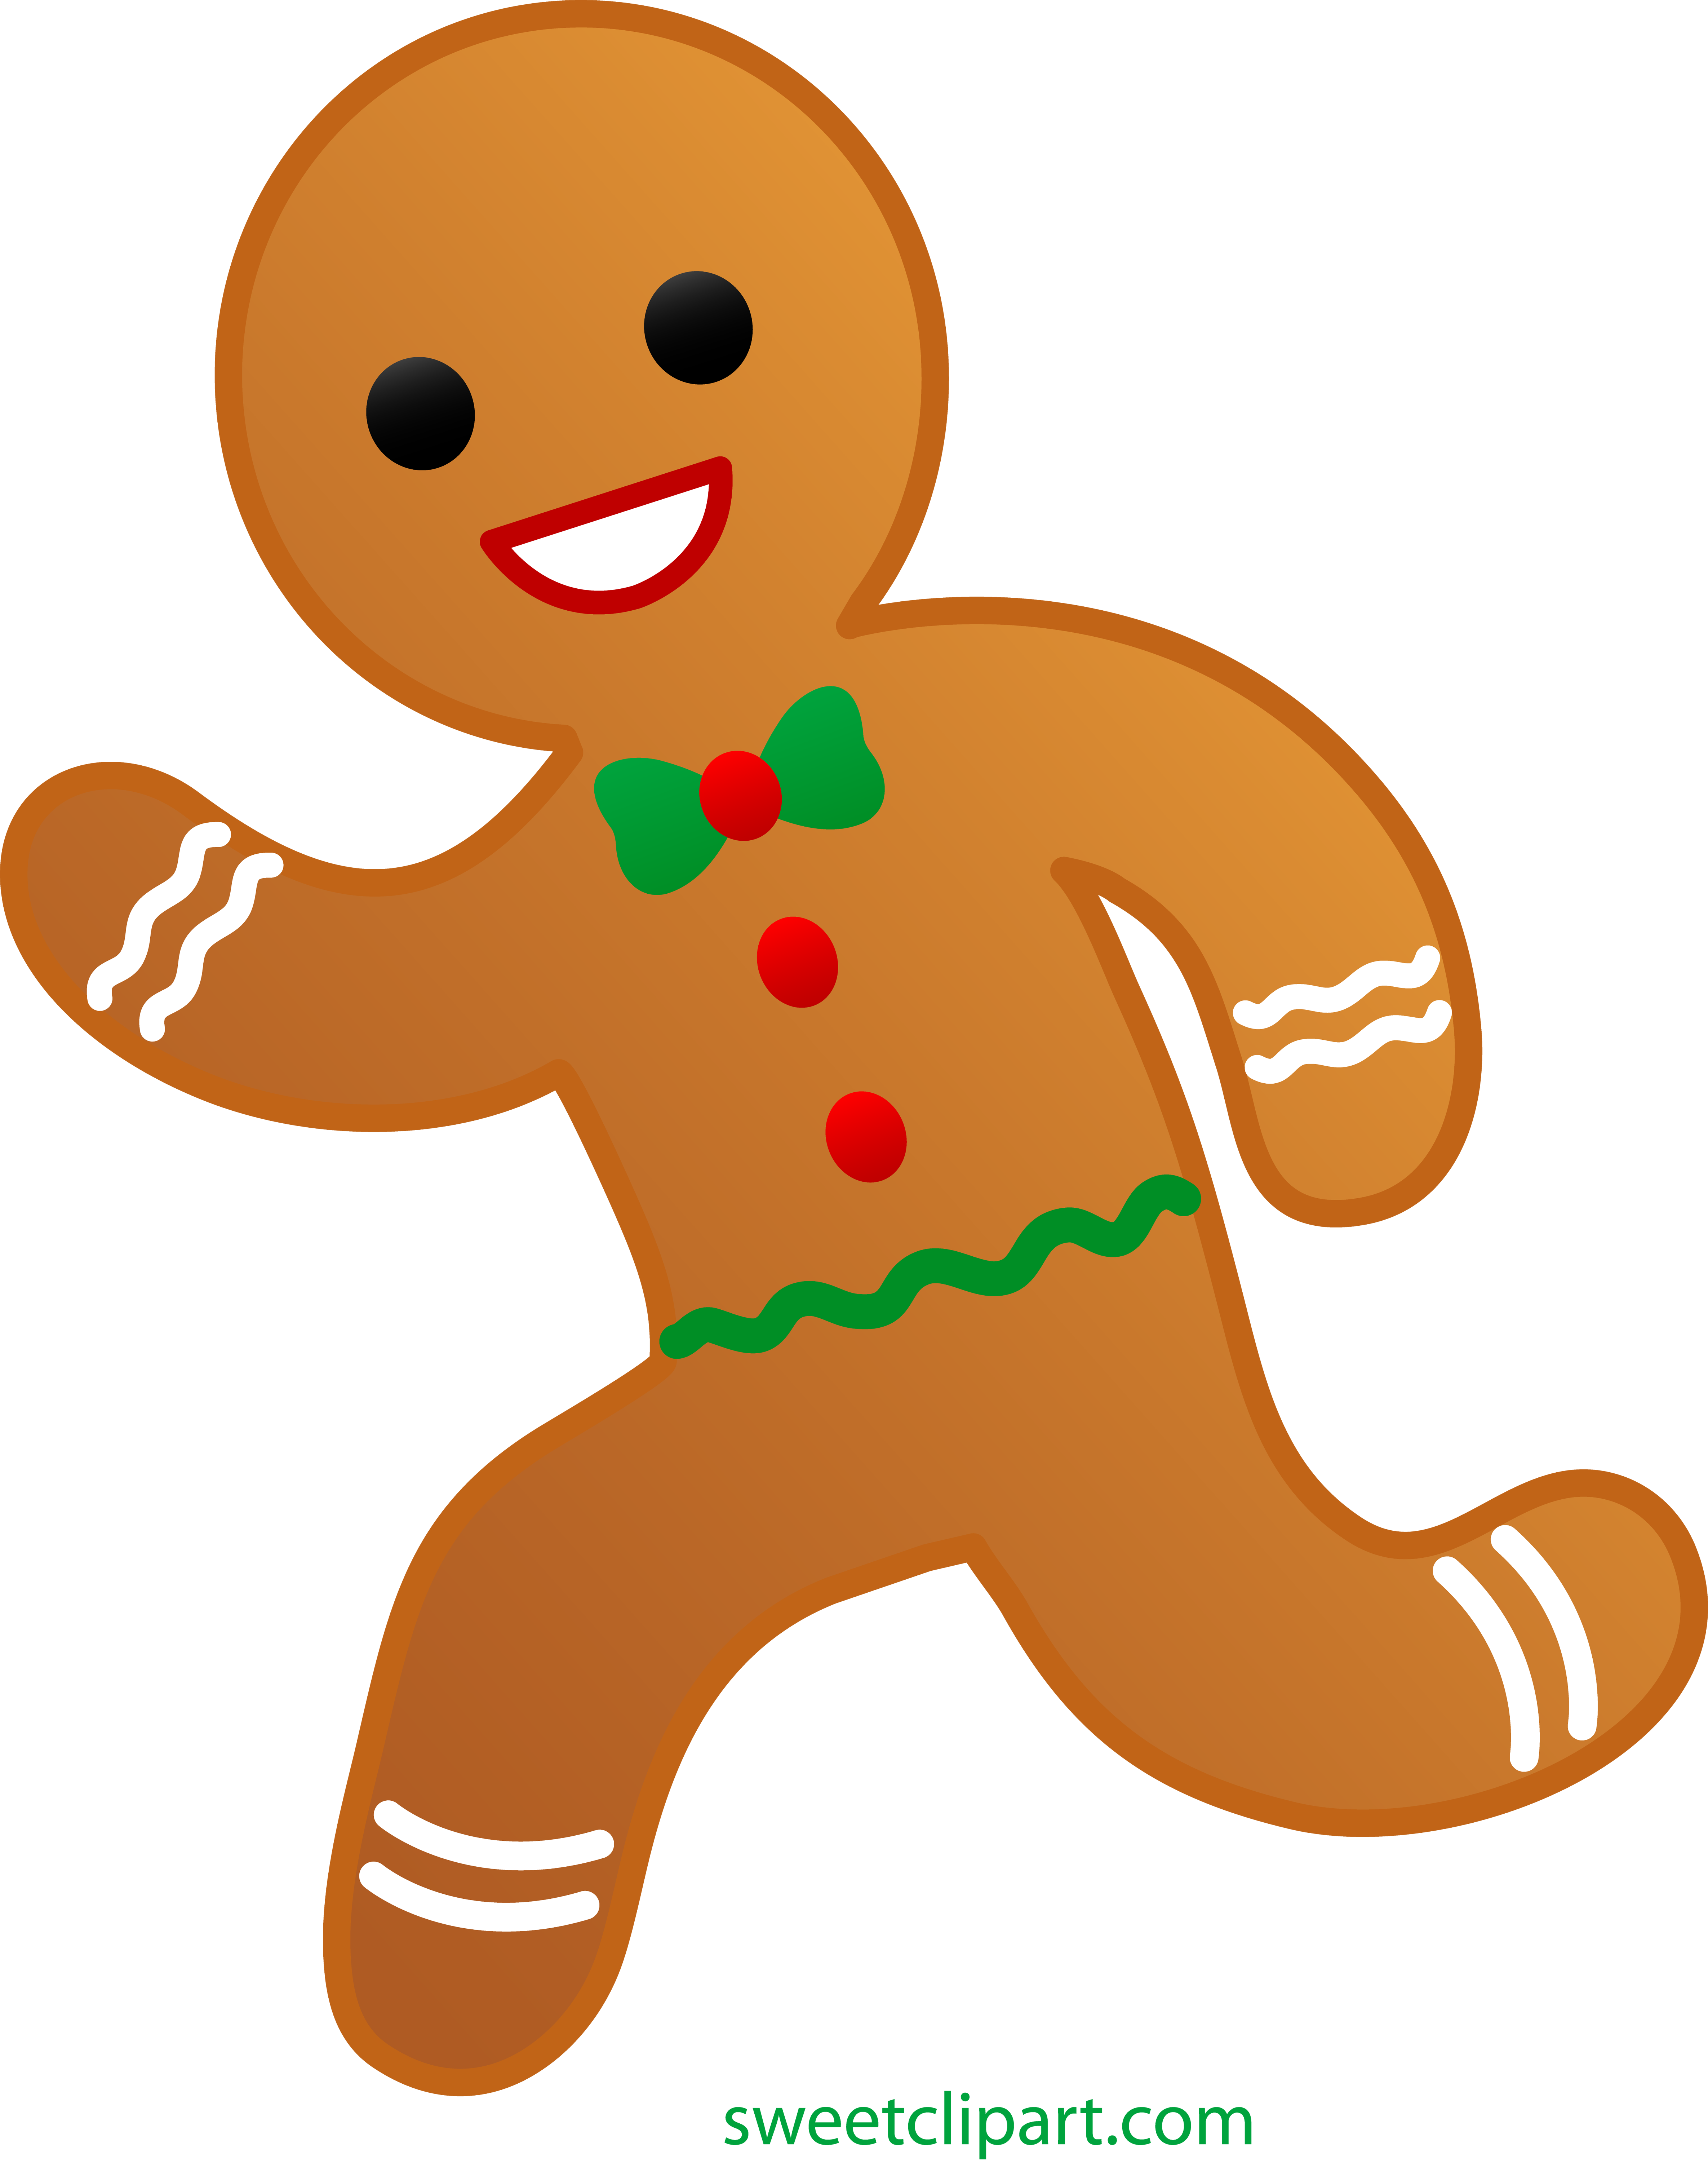 Cartoon gingerbread man clipart image download Gingerbread Man Running Away - Free Clip Art image download